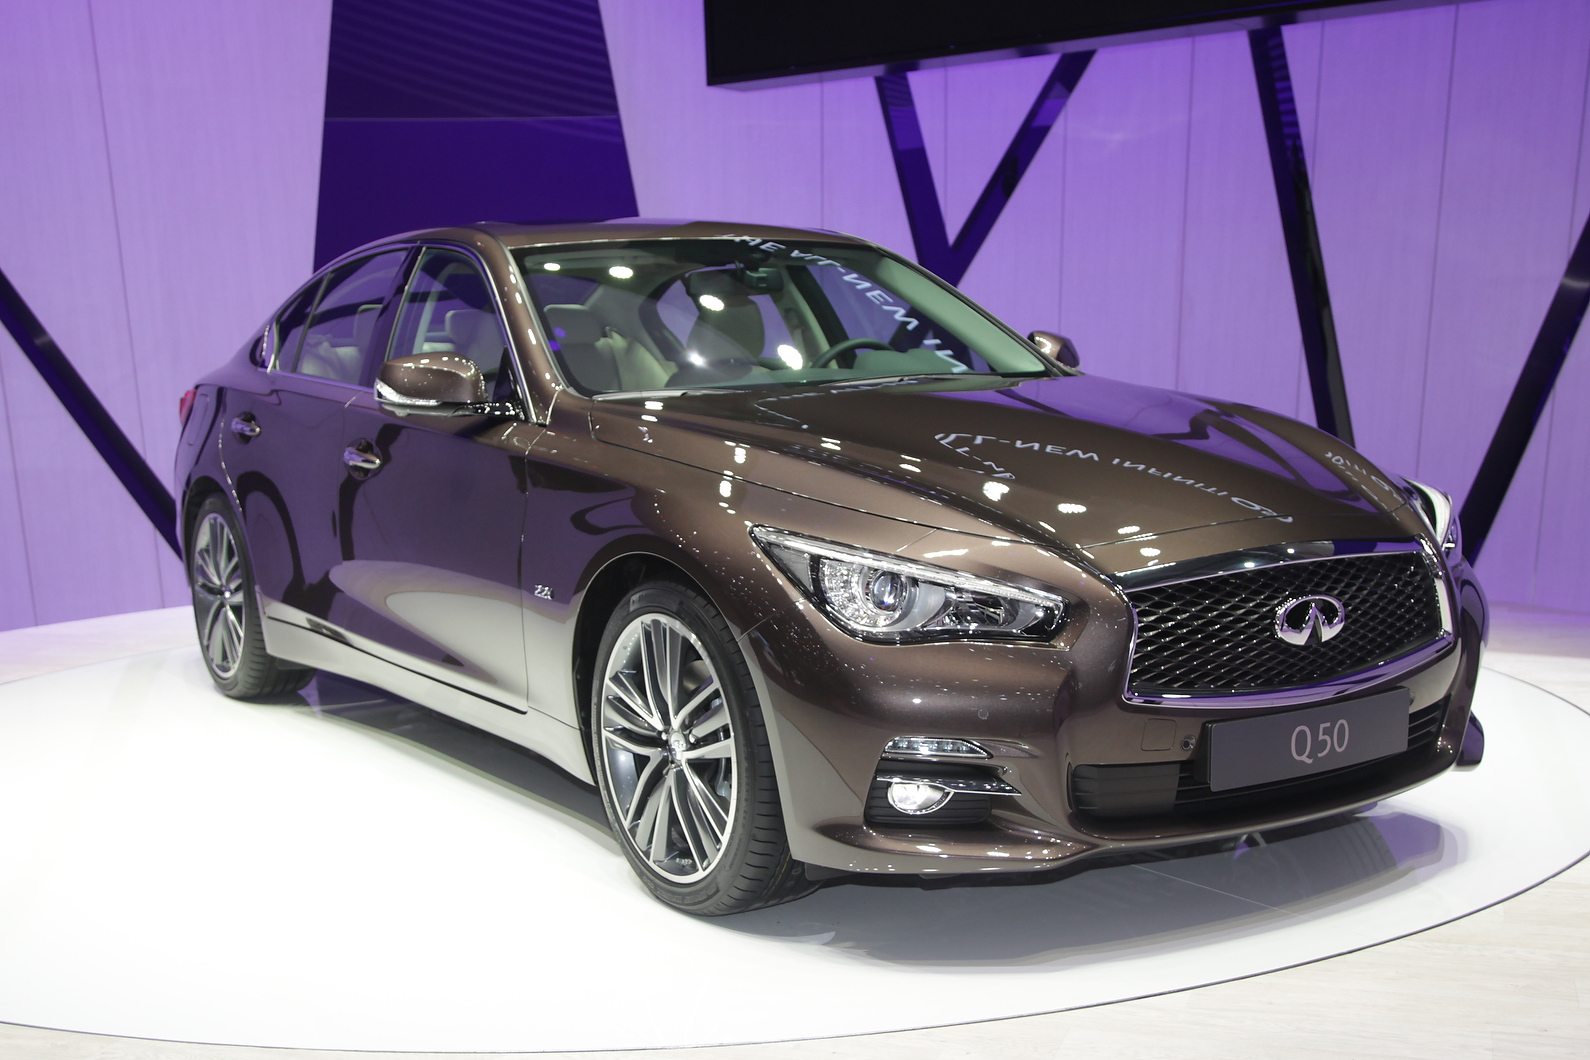 Infiniti showcased its Q50 saloon with a 2.1-litre Mercedes diesel